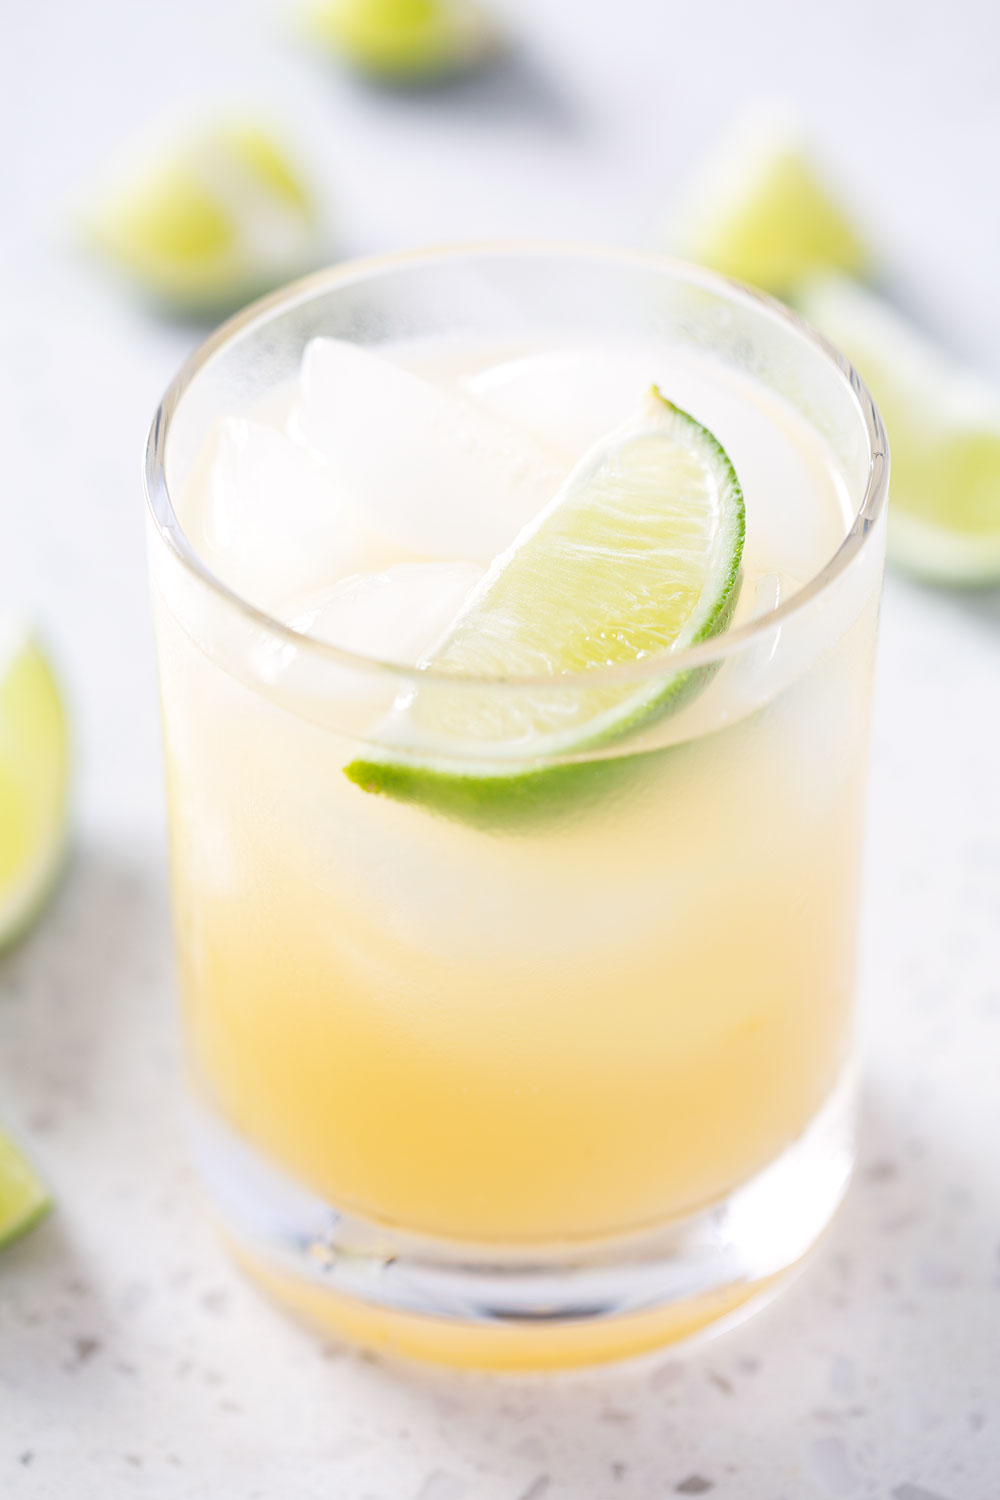 tumbler glass filled with a cocktail and garnished with a lime